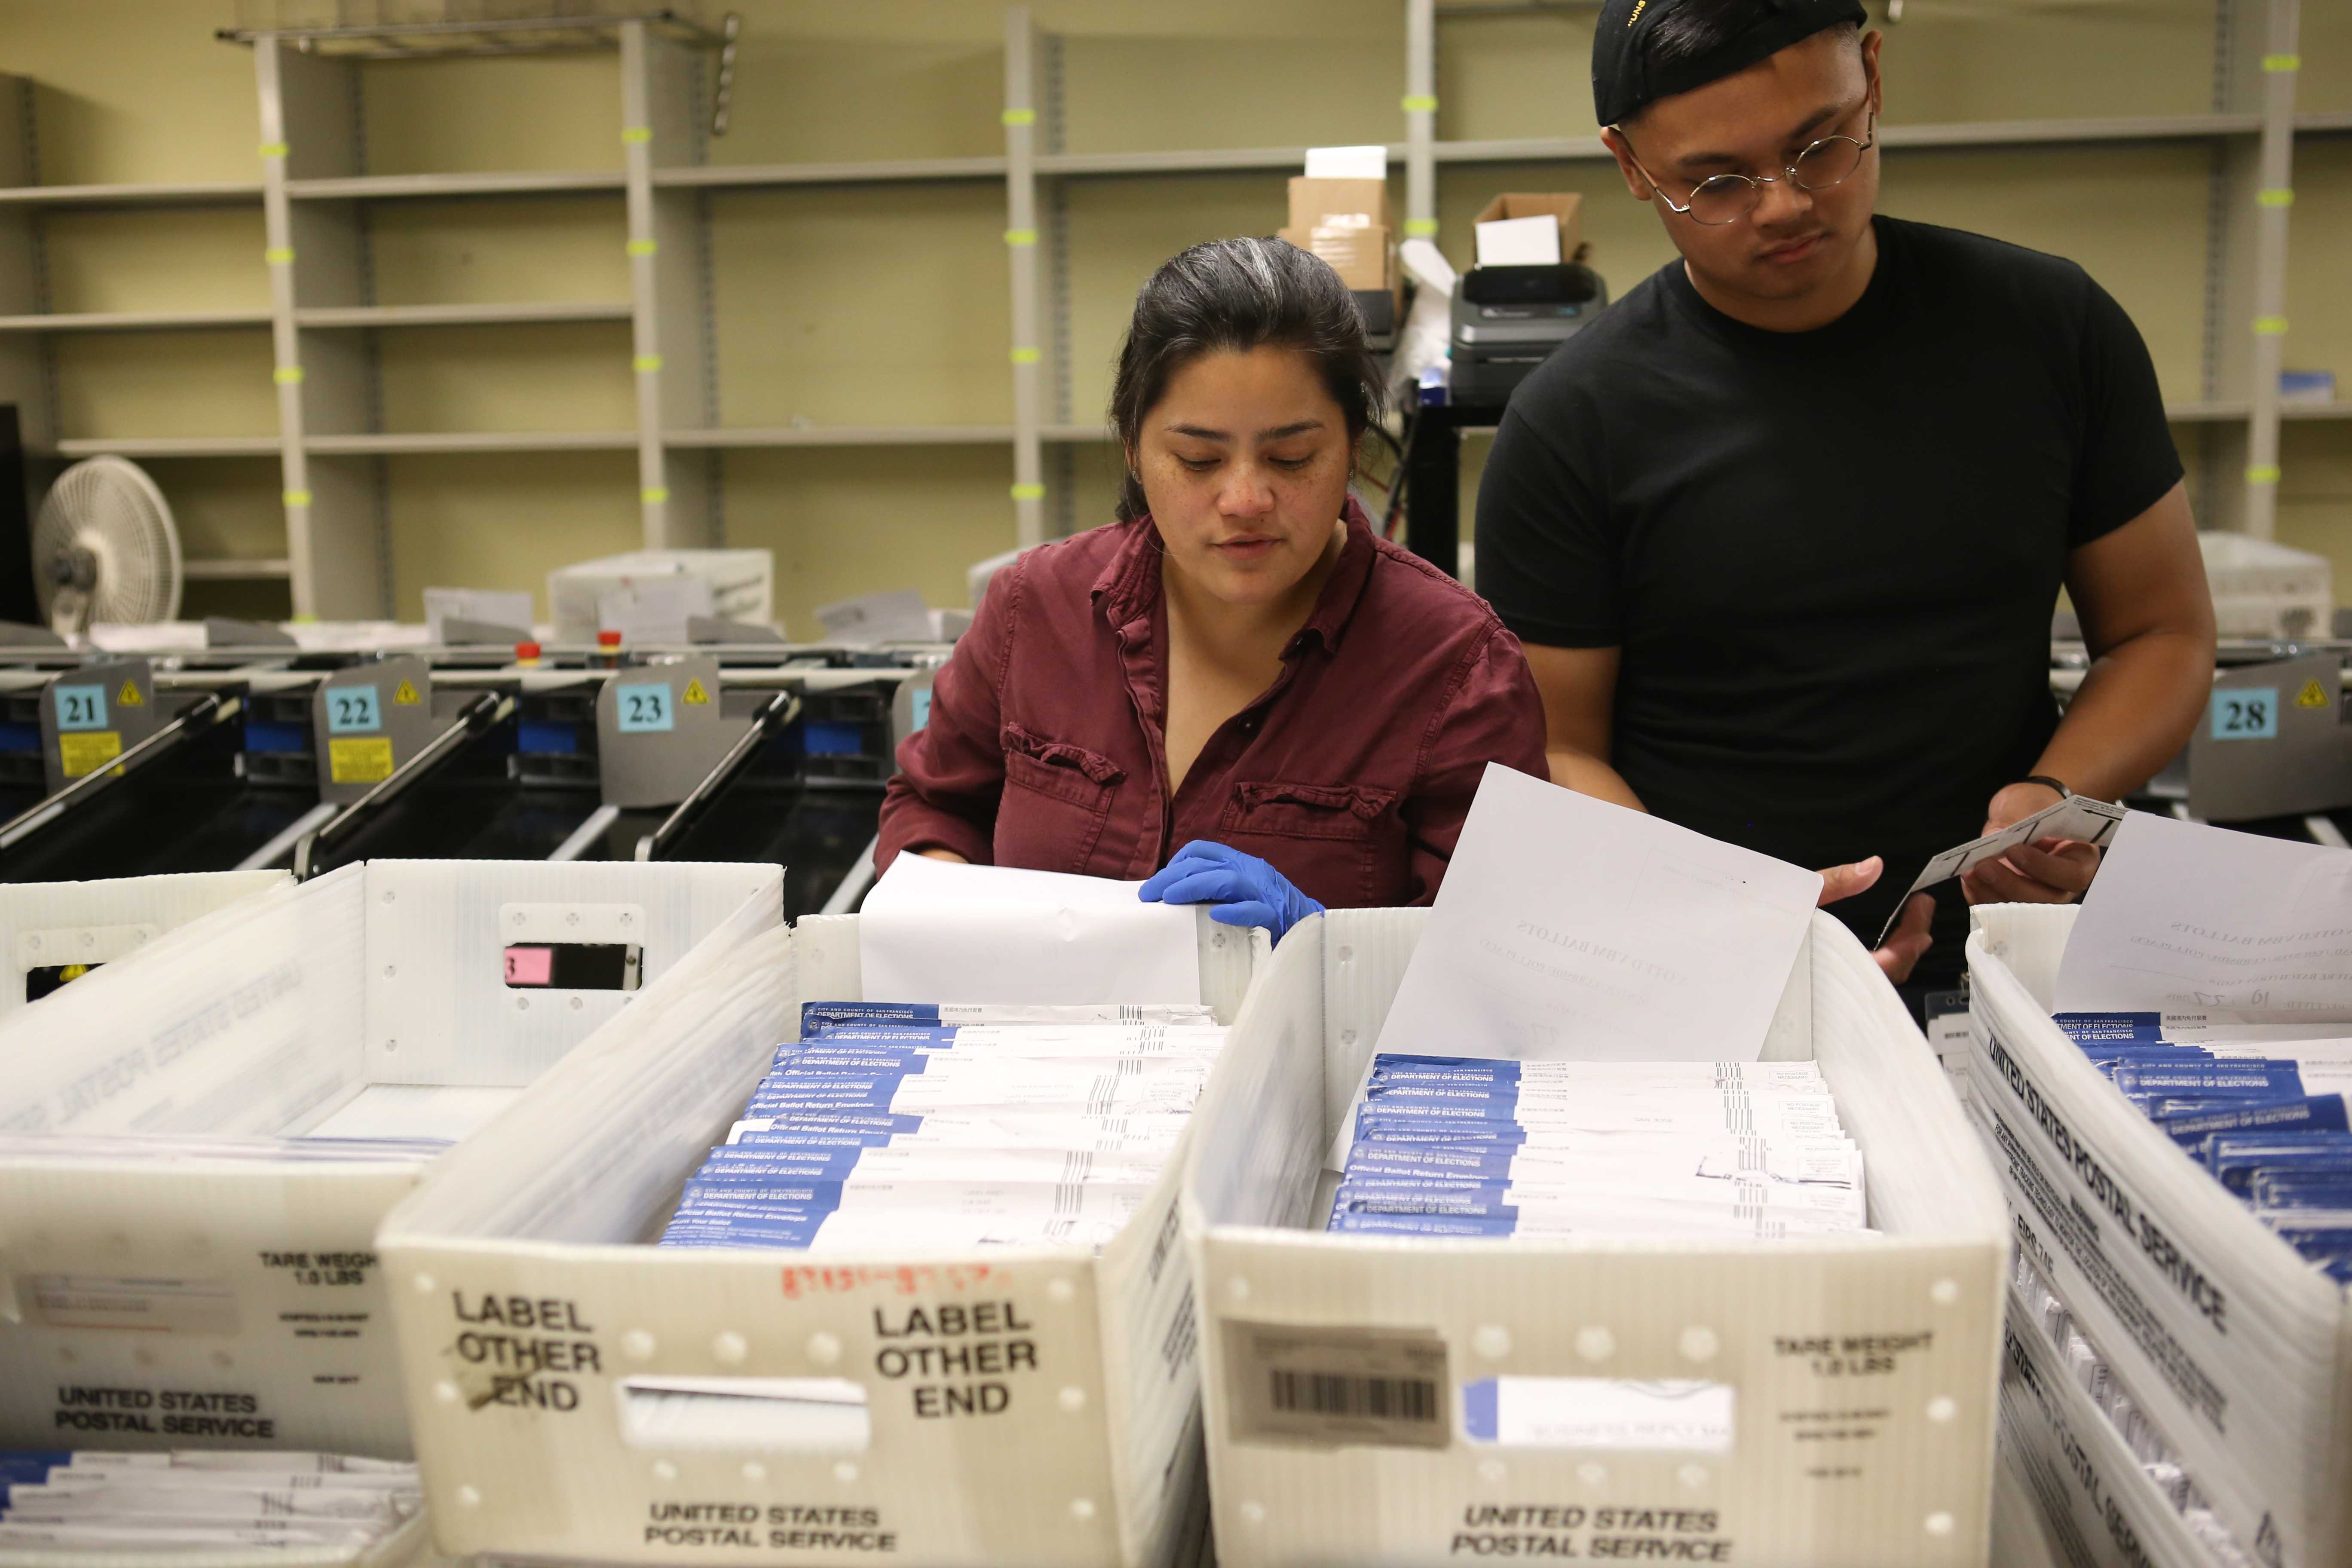 Early voting takes place at City Hall in San Francisco, Calif. on Saturday, October 27th, 2018. (Mira Laing/Golden Gate Xpress)